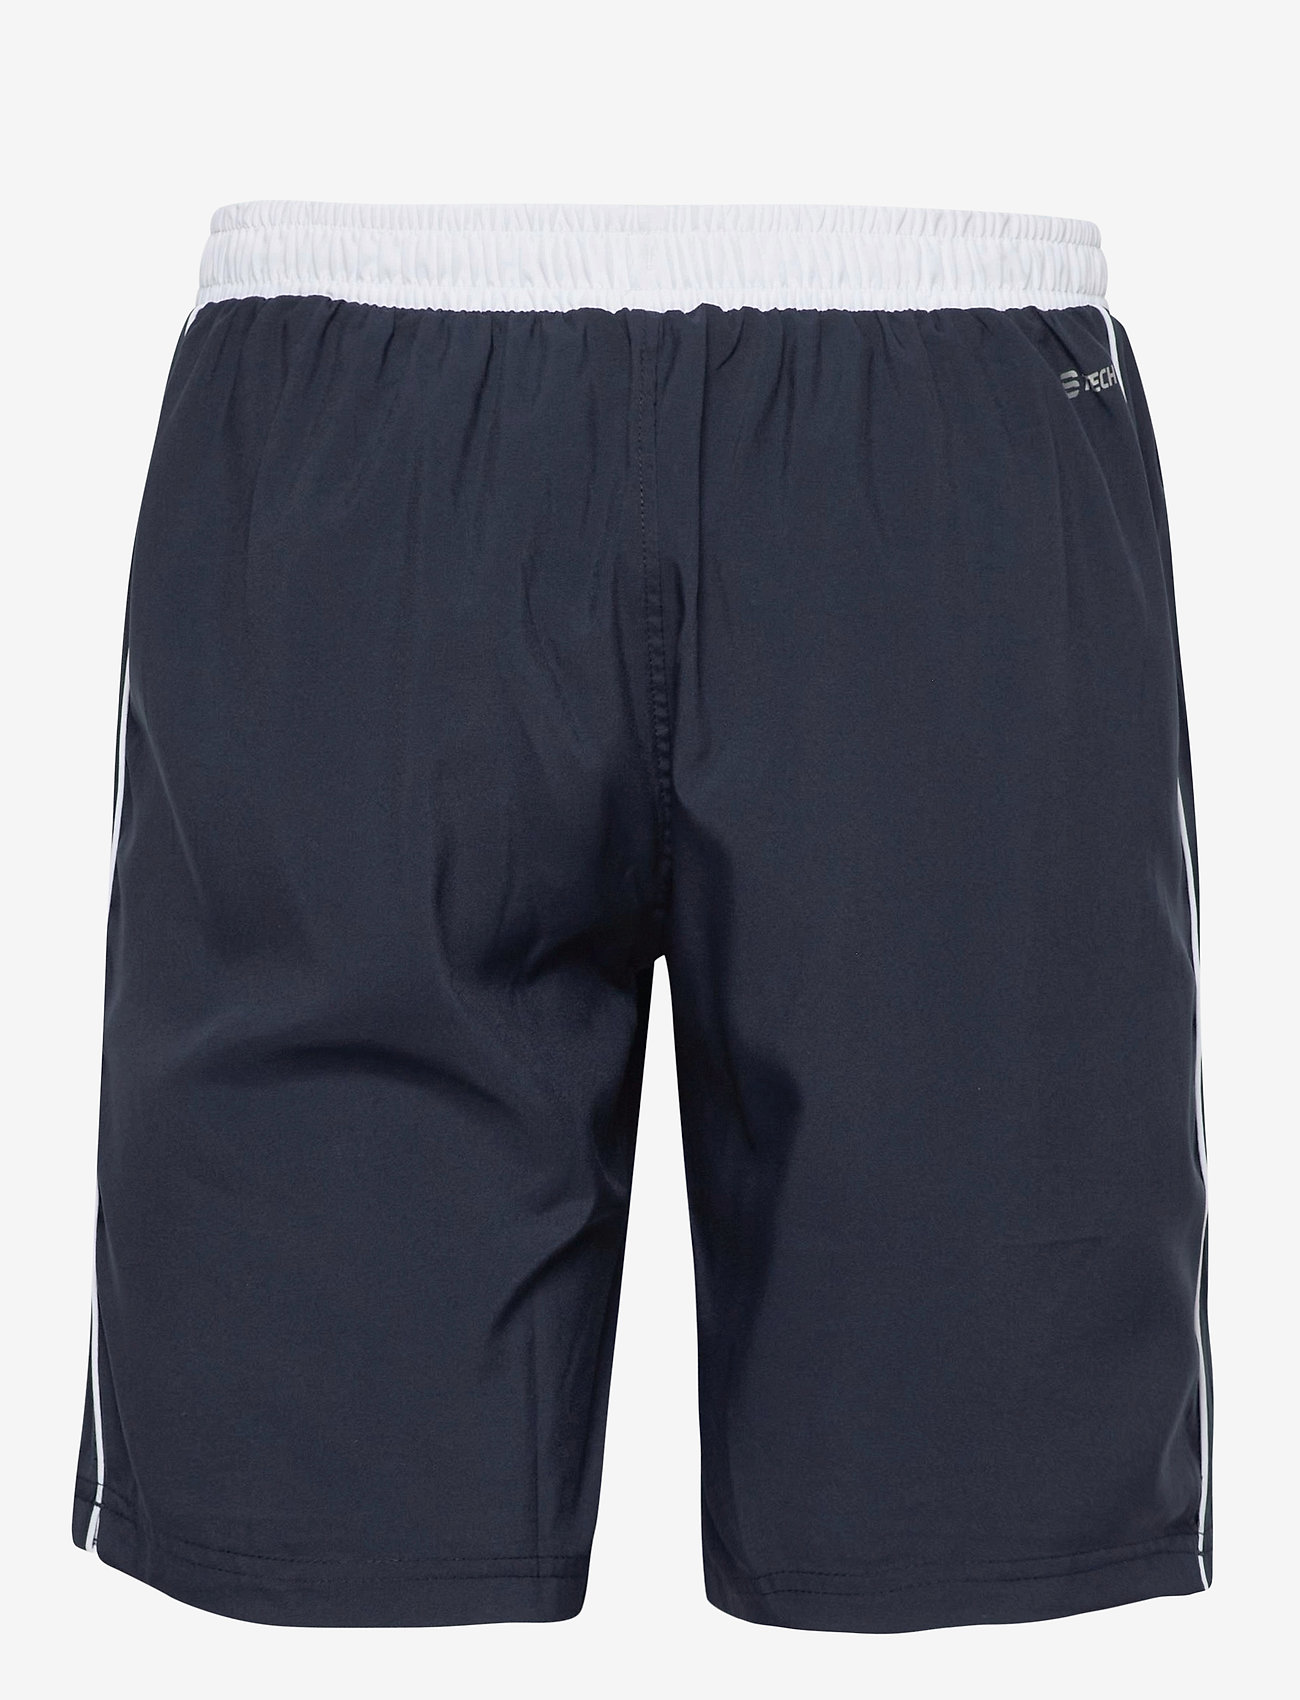 Sergio Tacchini - CLUB TECH SHORTS - trainingsshorts - navy/white - 1